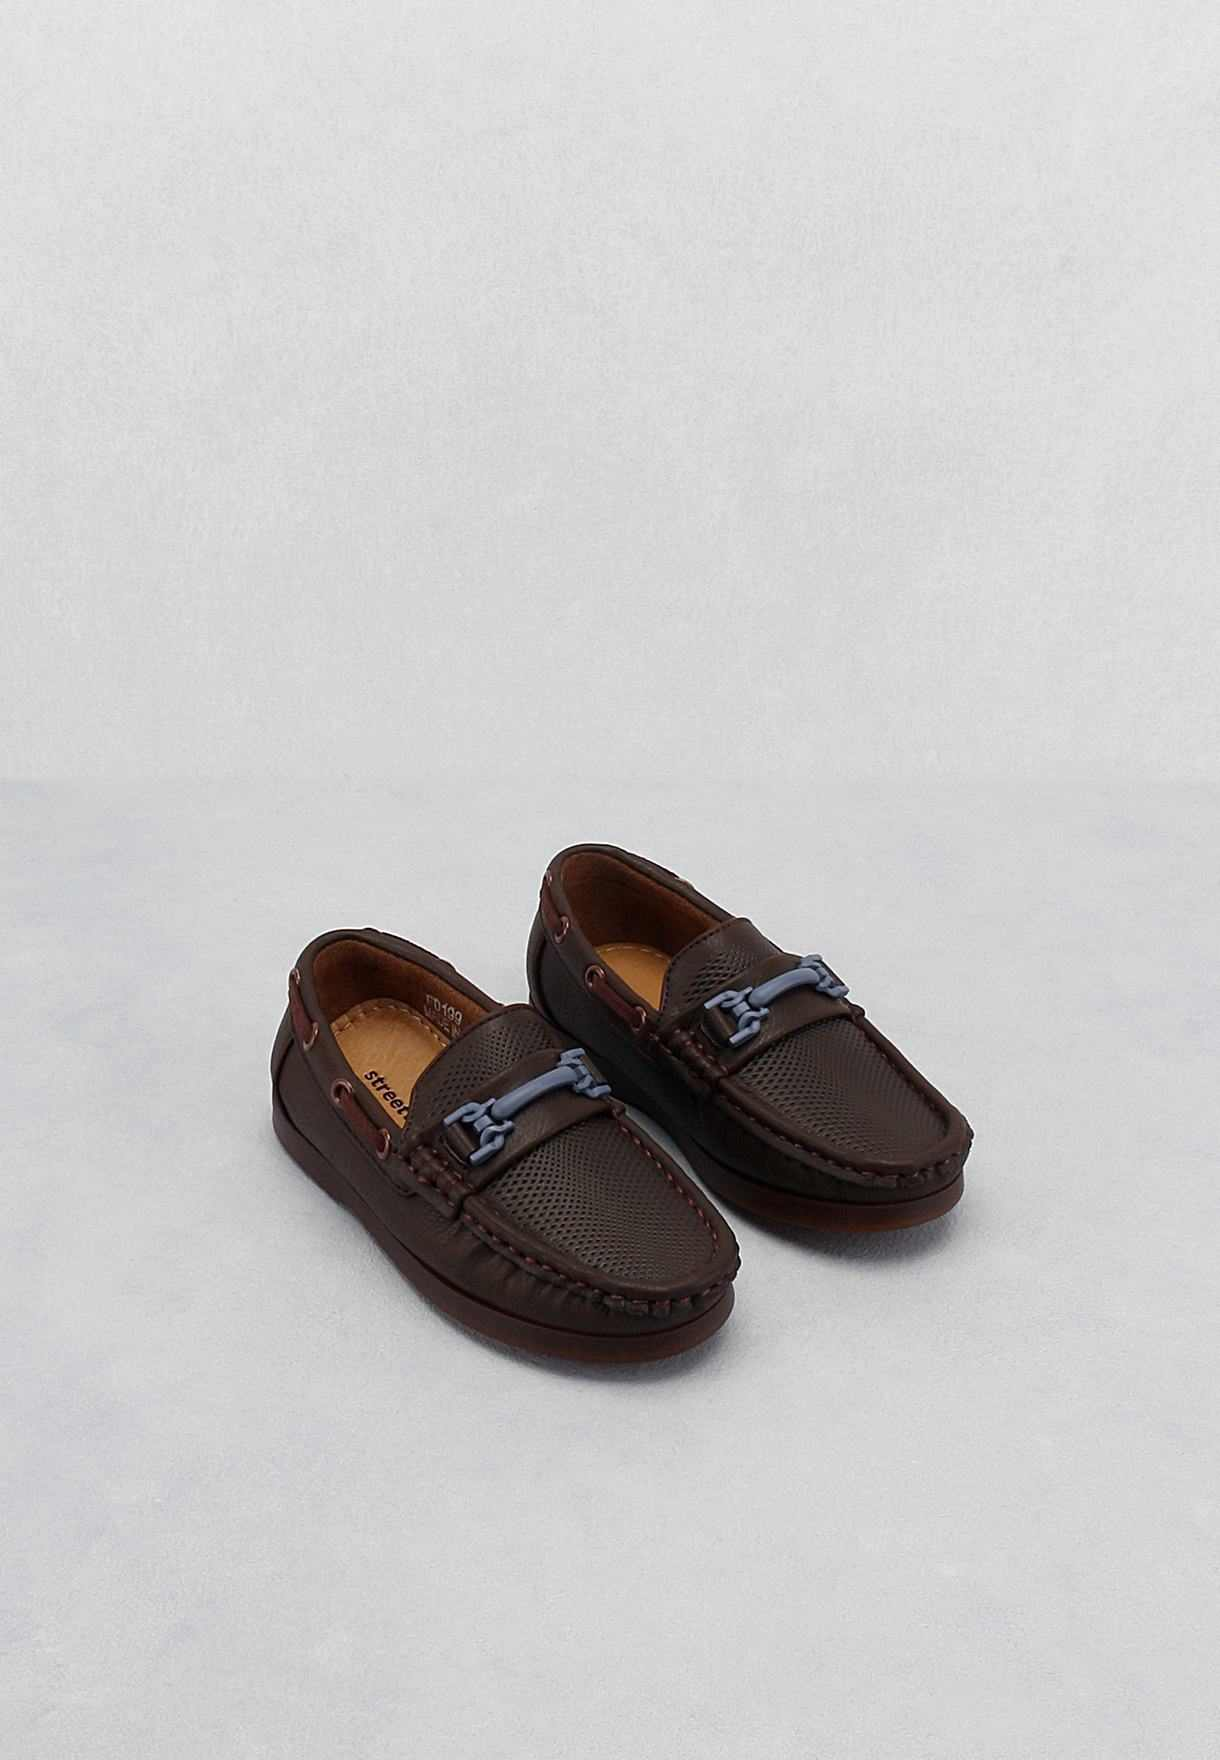 Boy's Flat Shoes